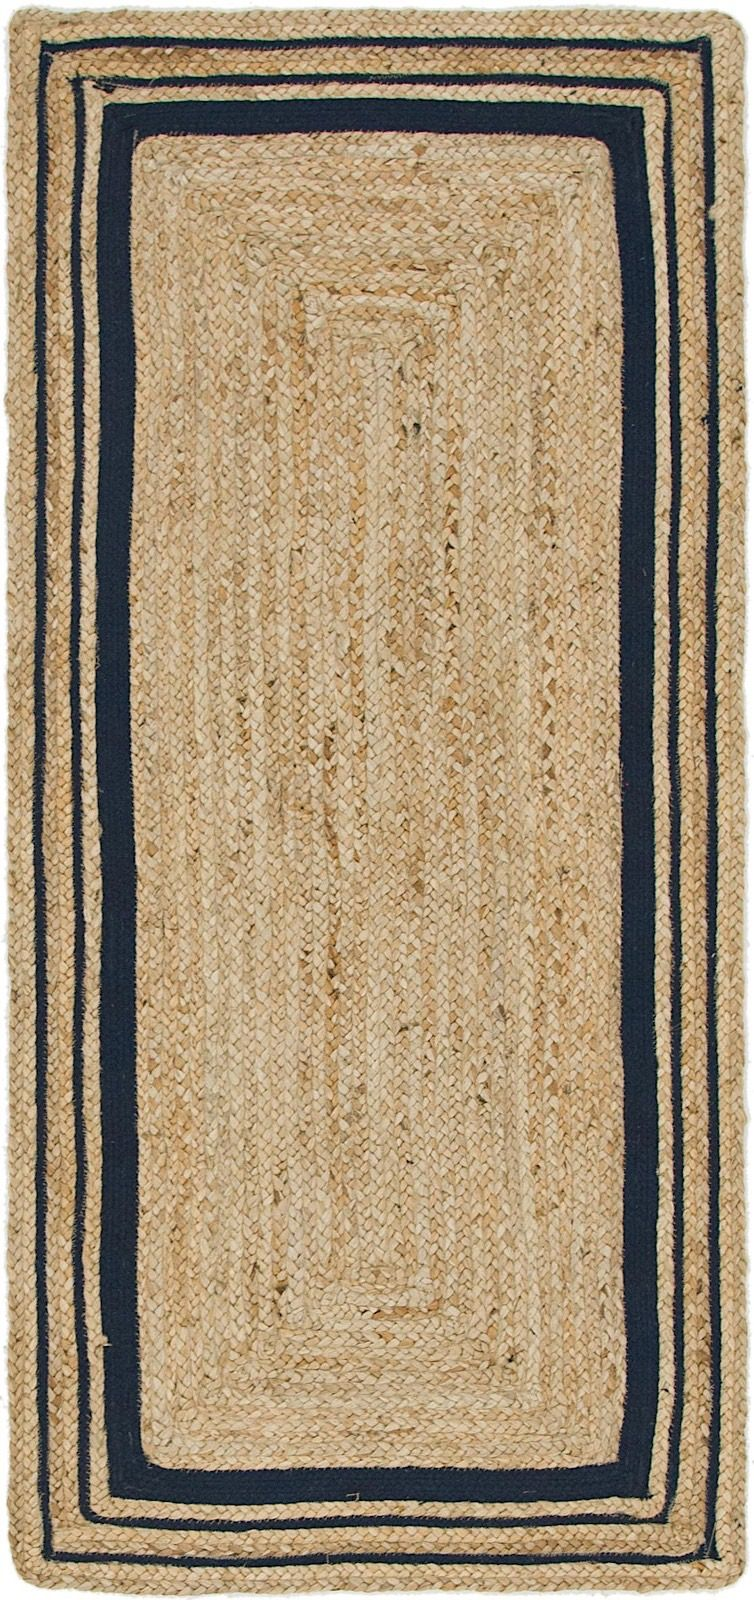 unique loom braided jute braided area rug collection